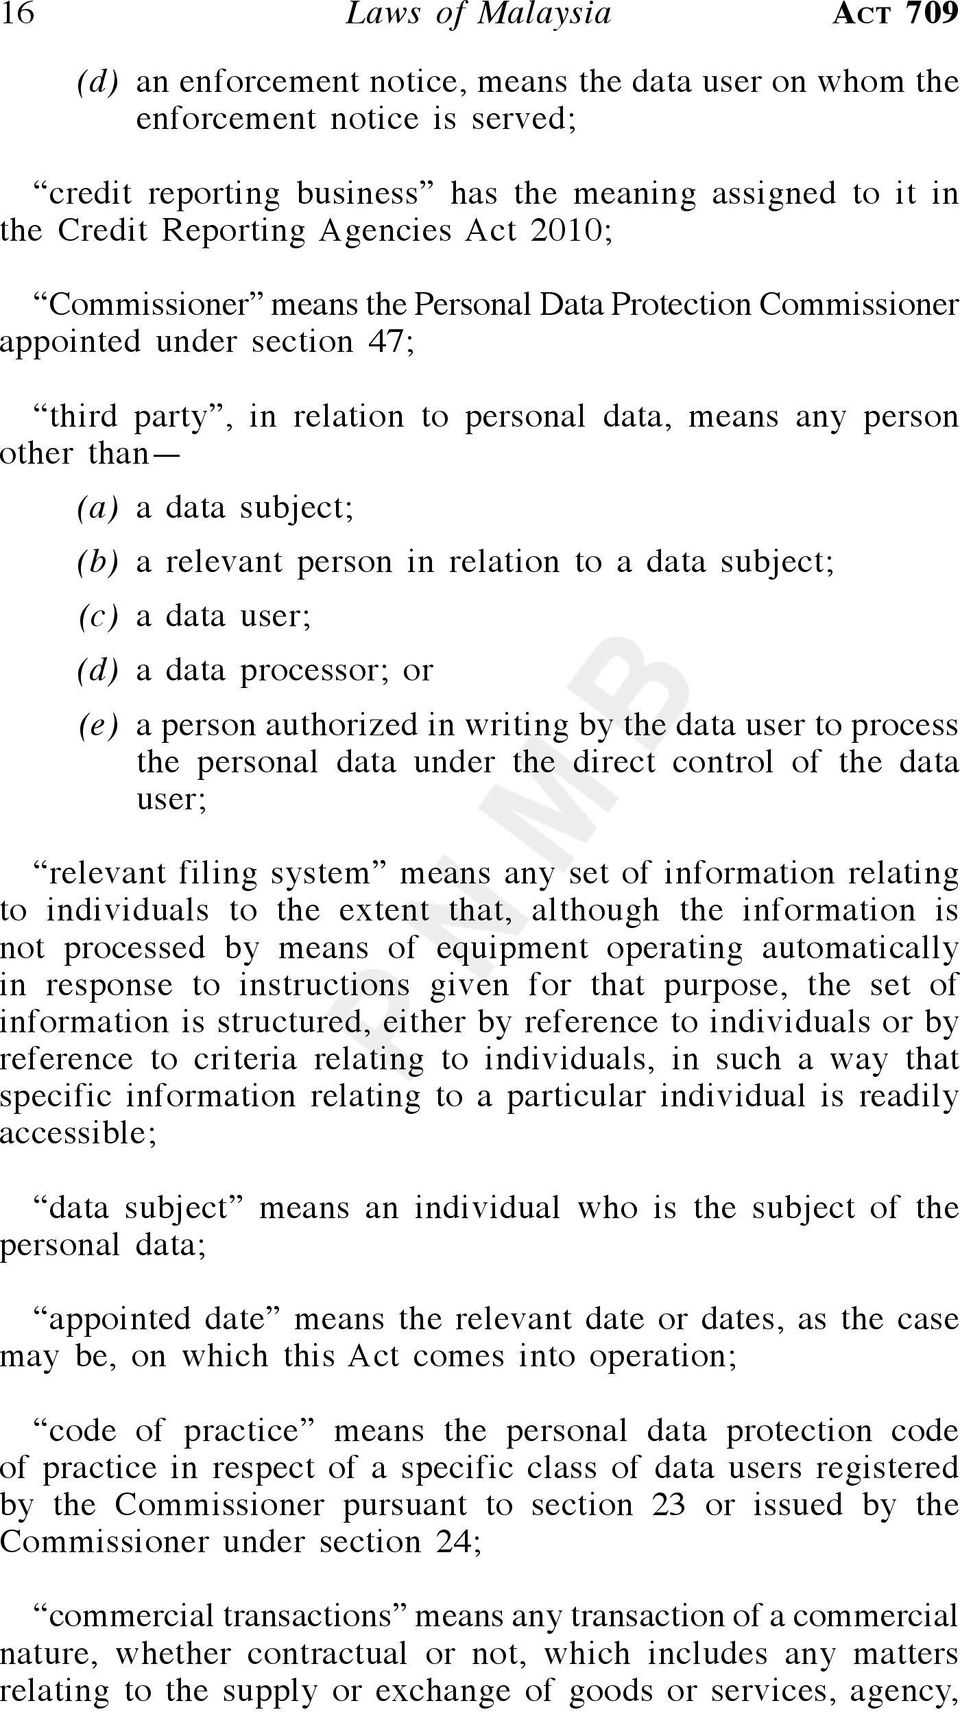 (b) a relevant person in relation to a data subject; (c) a data user; (d) a data processor; or (e) a person authorized in writing by the data user to process the personal data under the direct